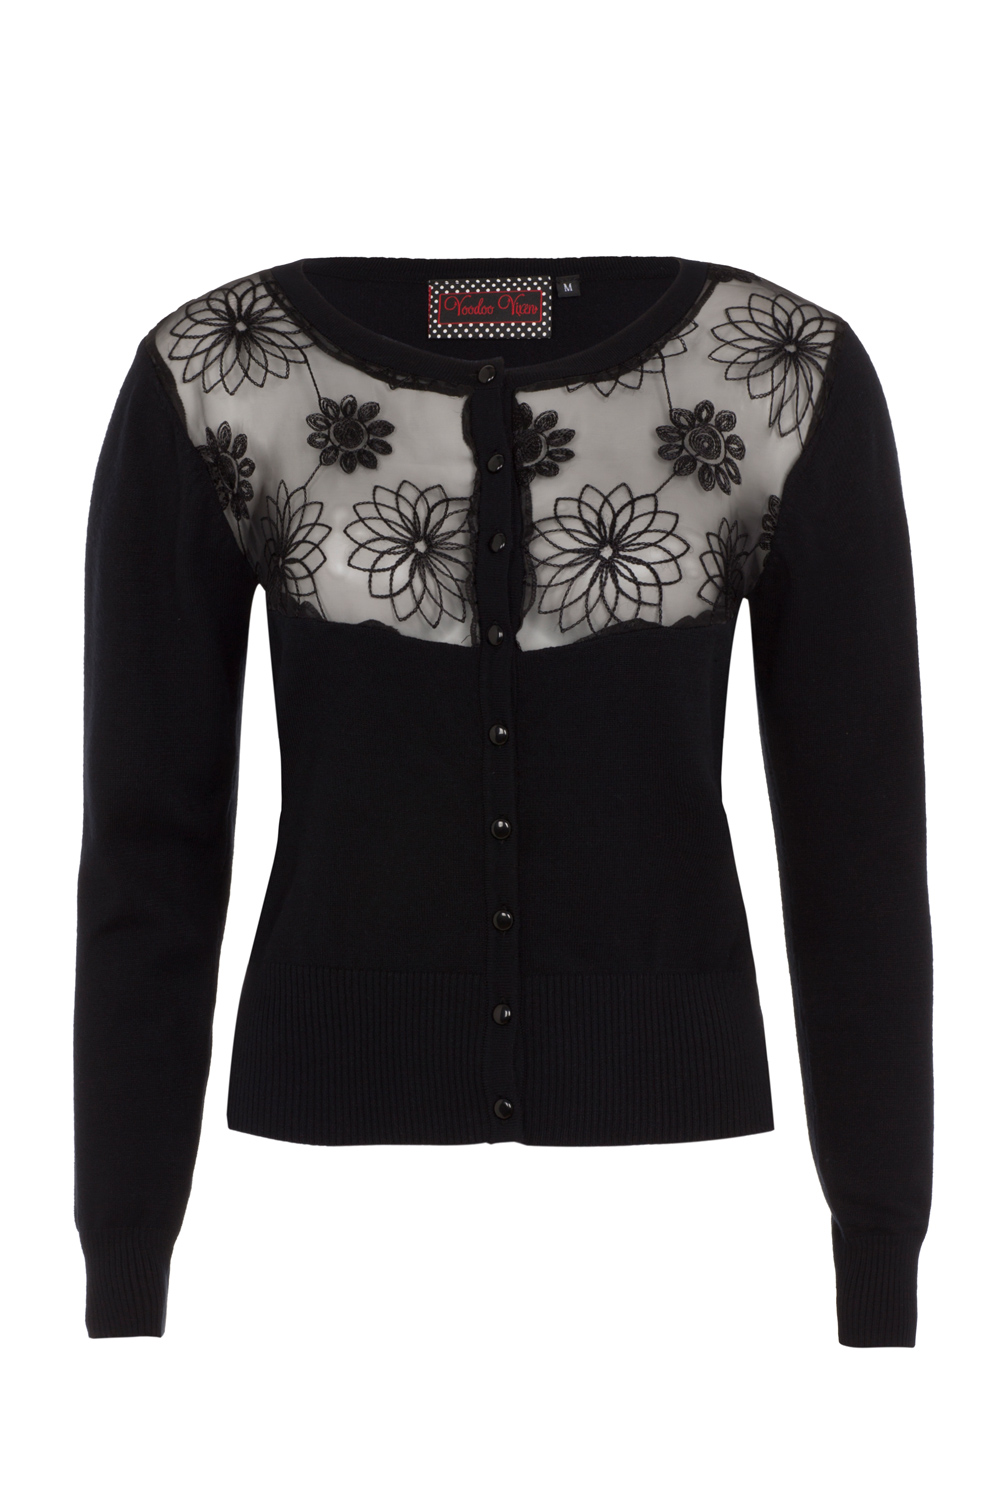 Katie Black Floral Embroided Cardigan